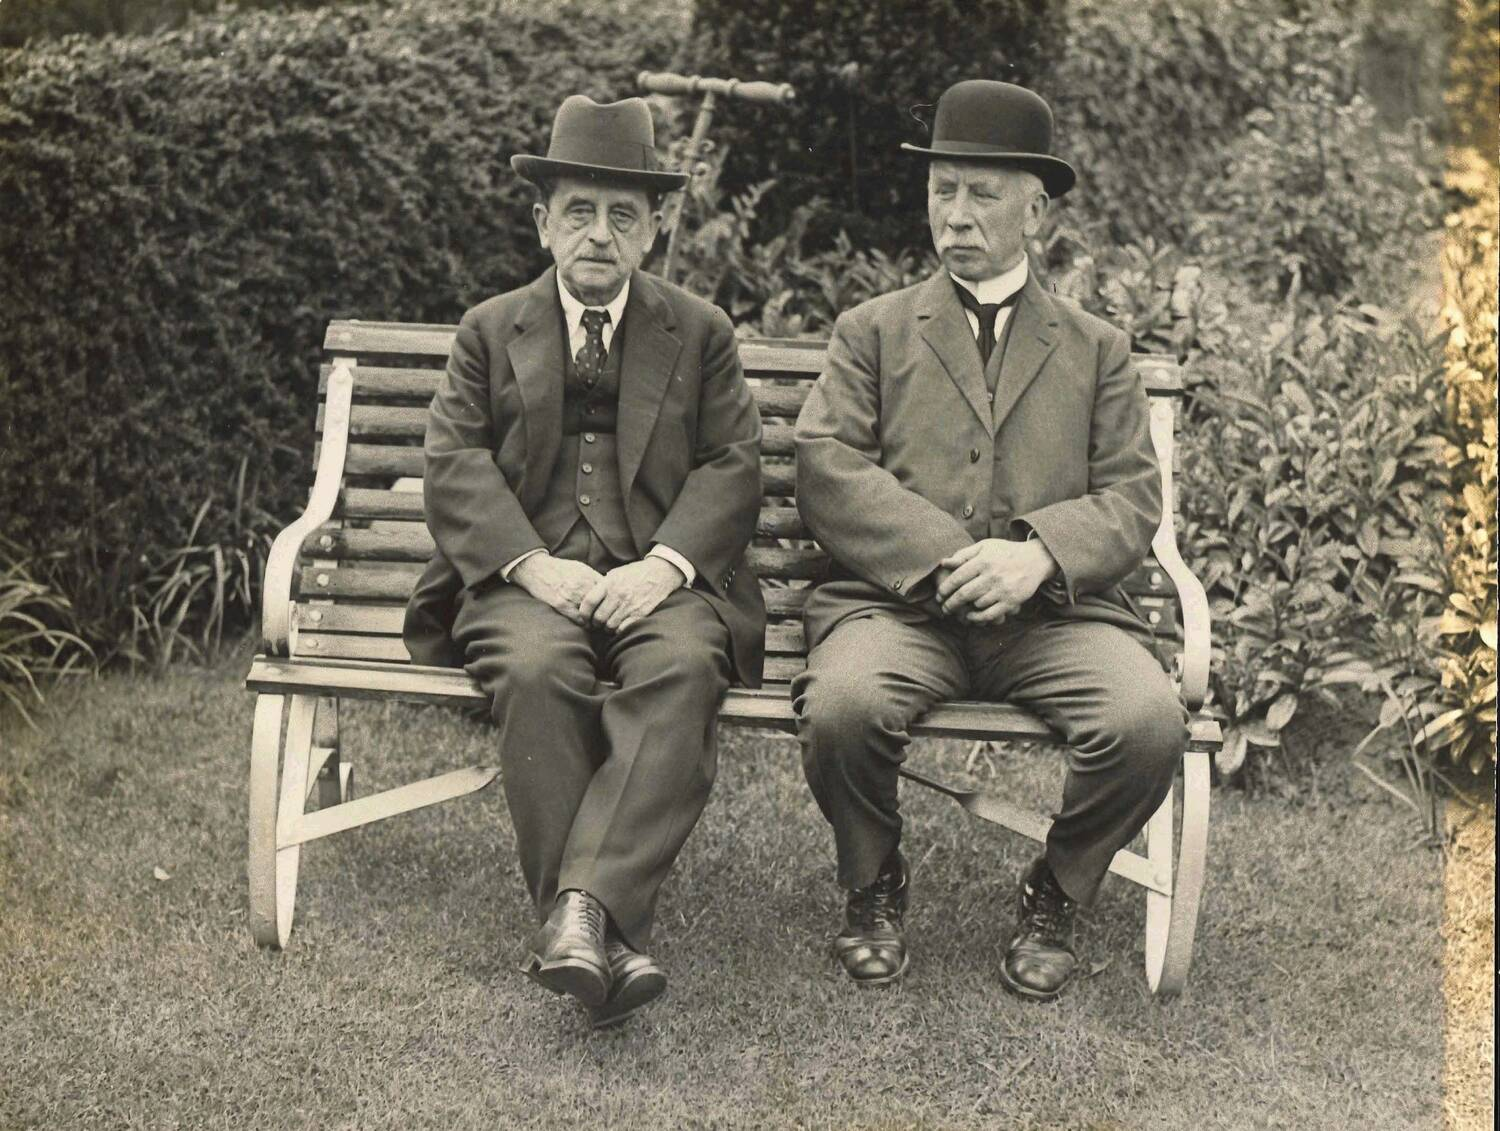 Black and white photograph of two men wearing suits and hats, sitting on a bench in a garden.